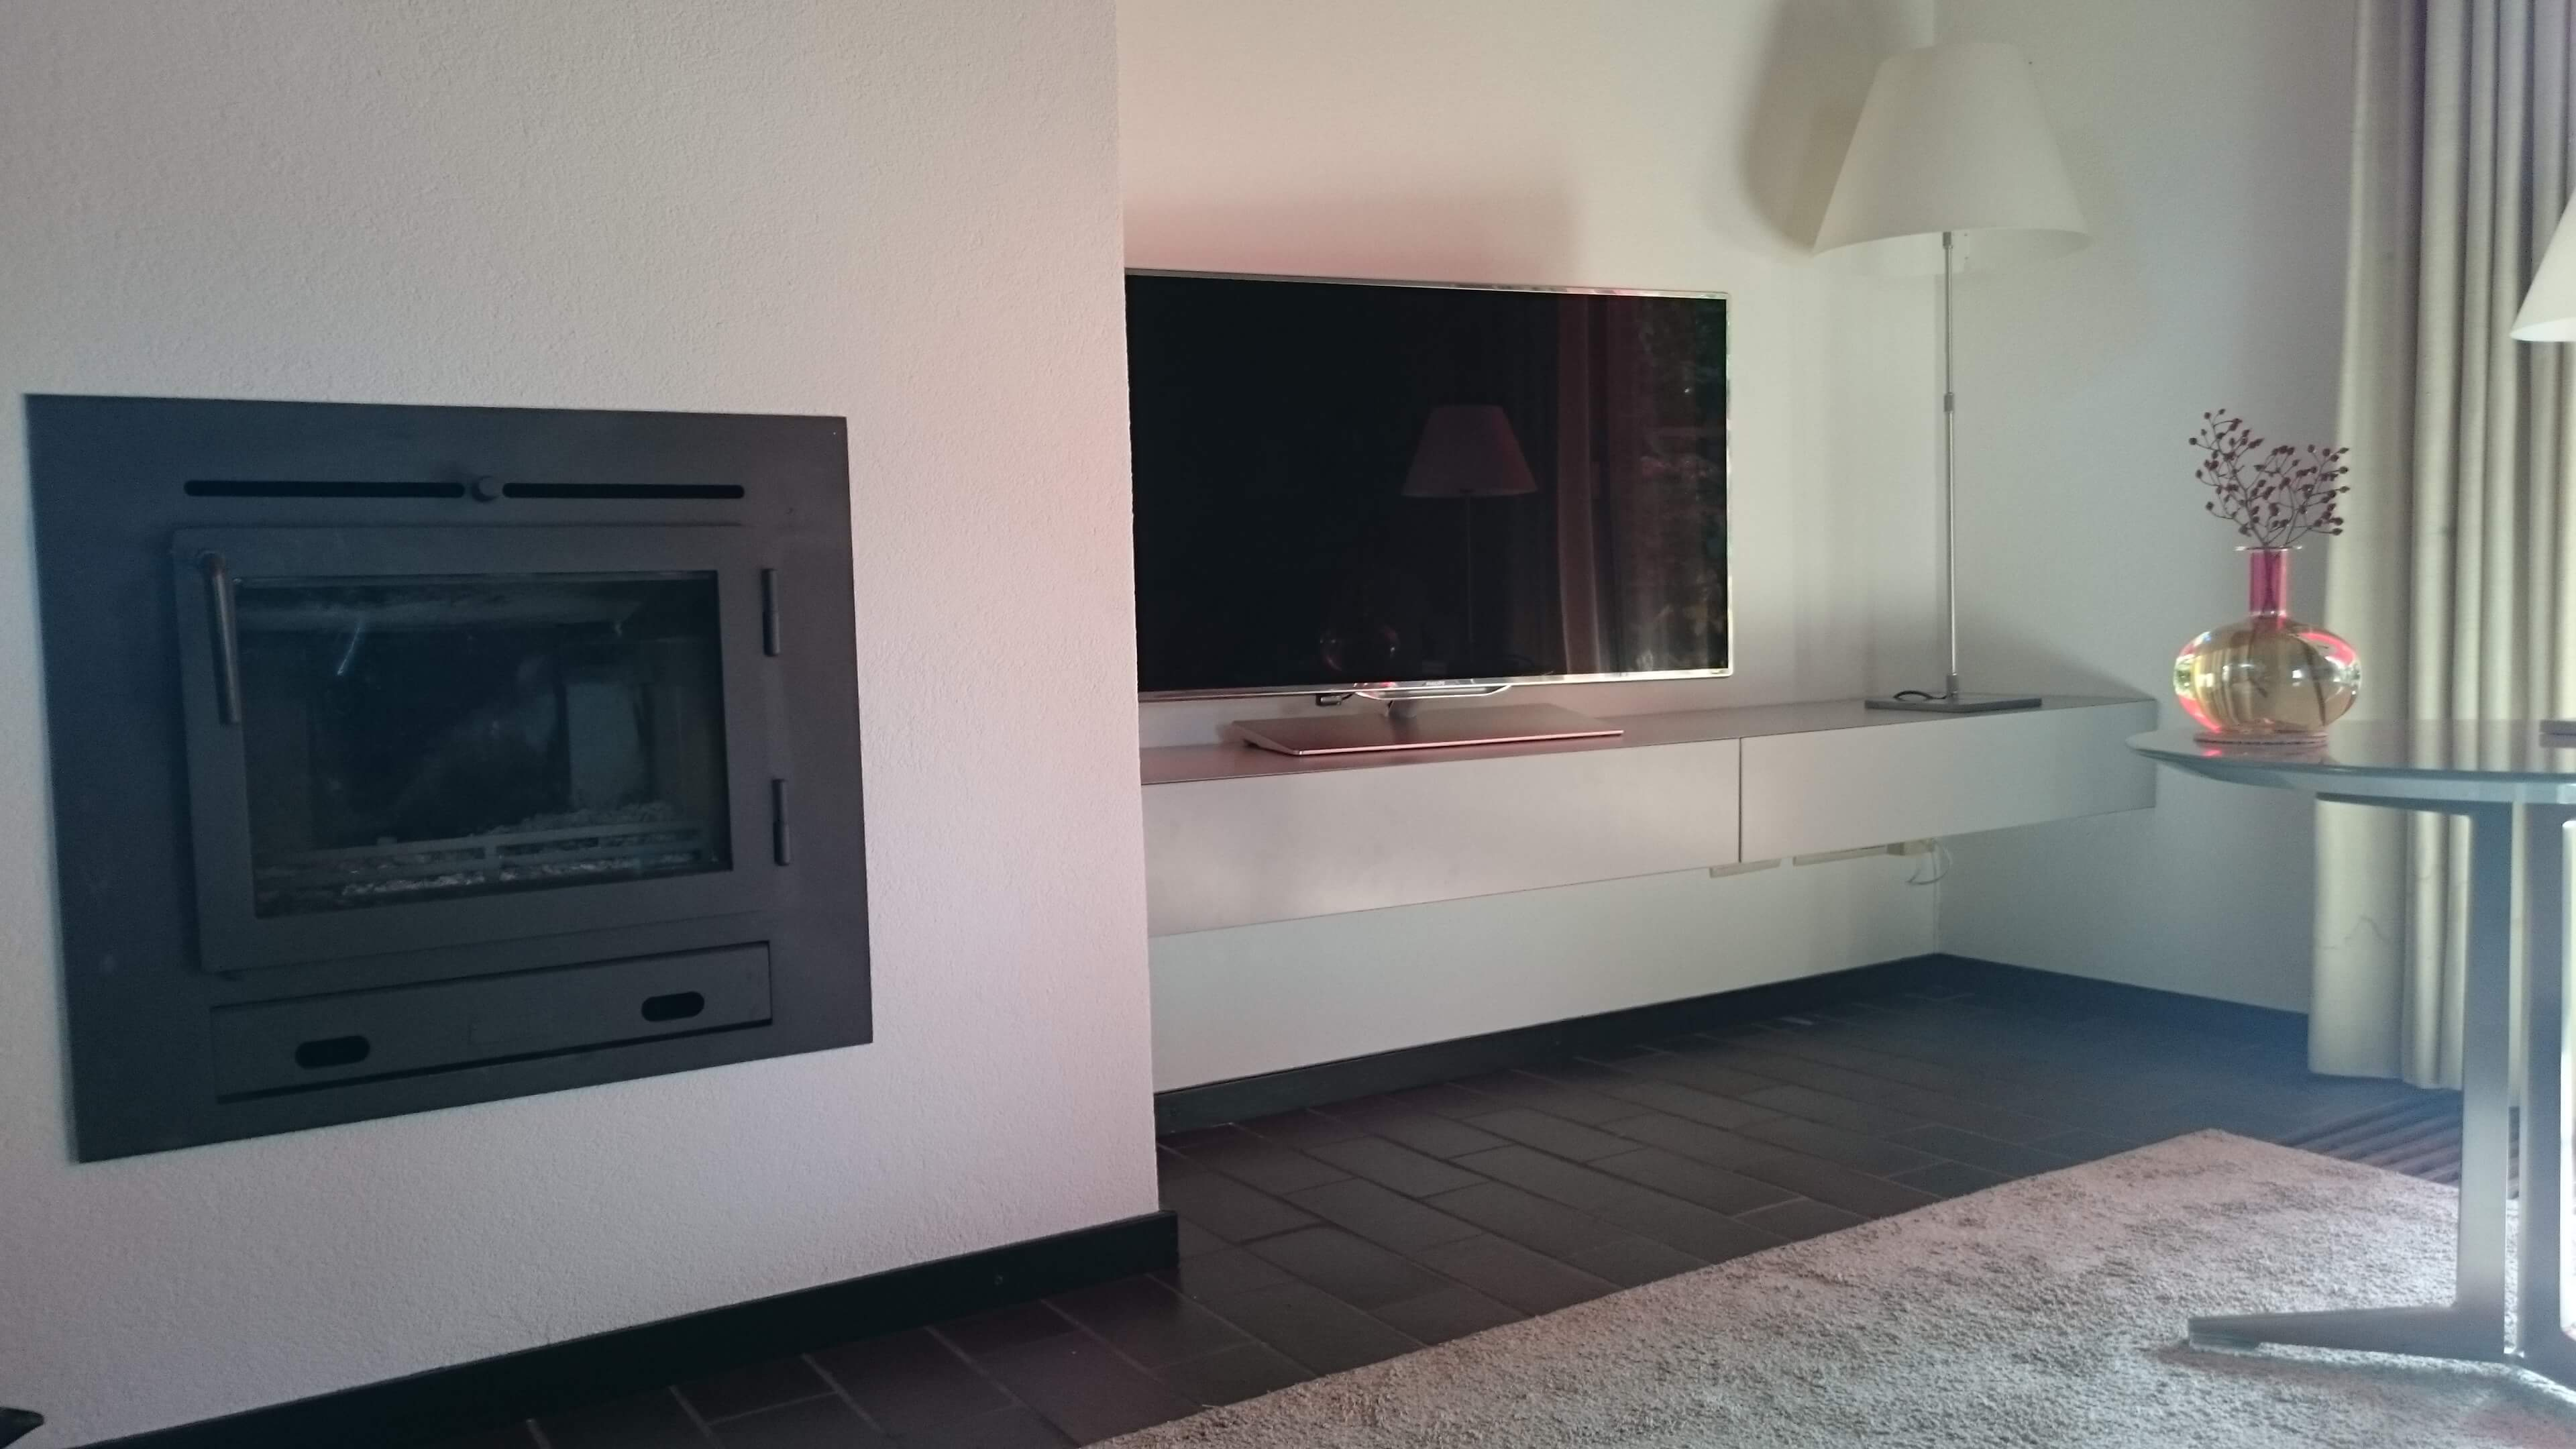 Tv In Muur : Lg w picture on wall oled superdunne tv die je op de muur plakt